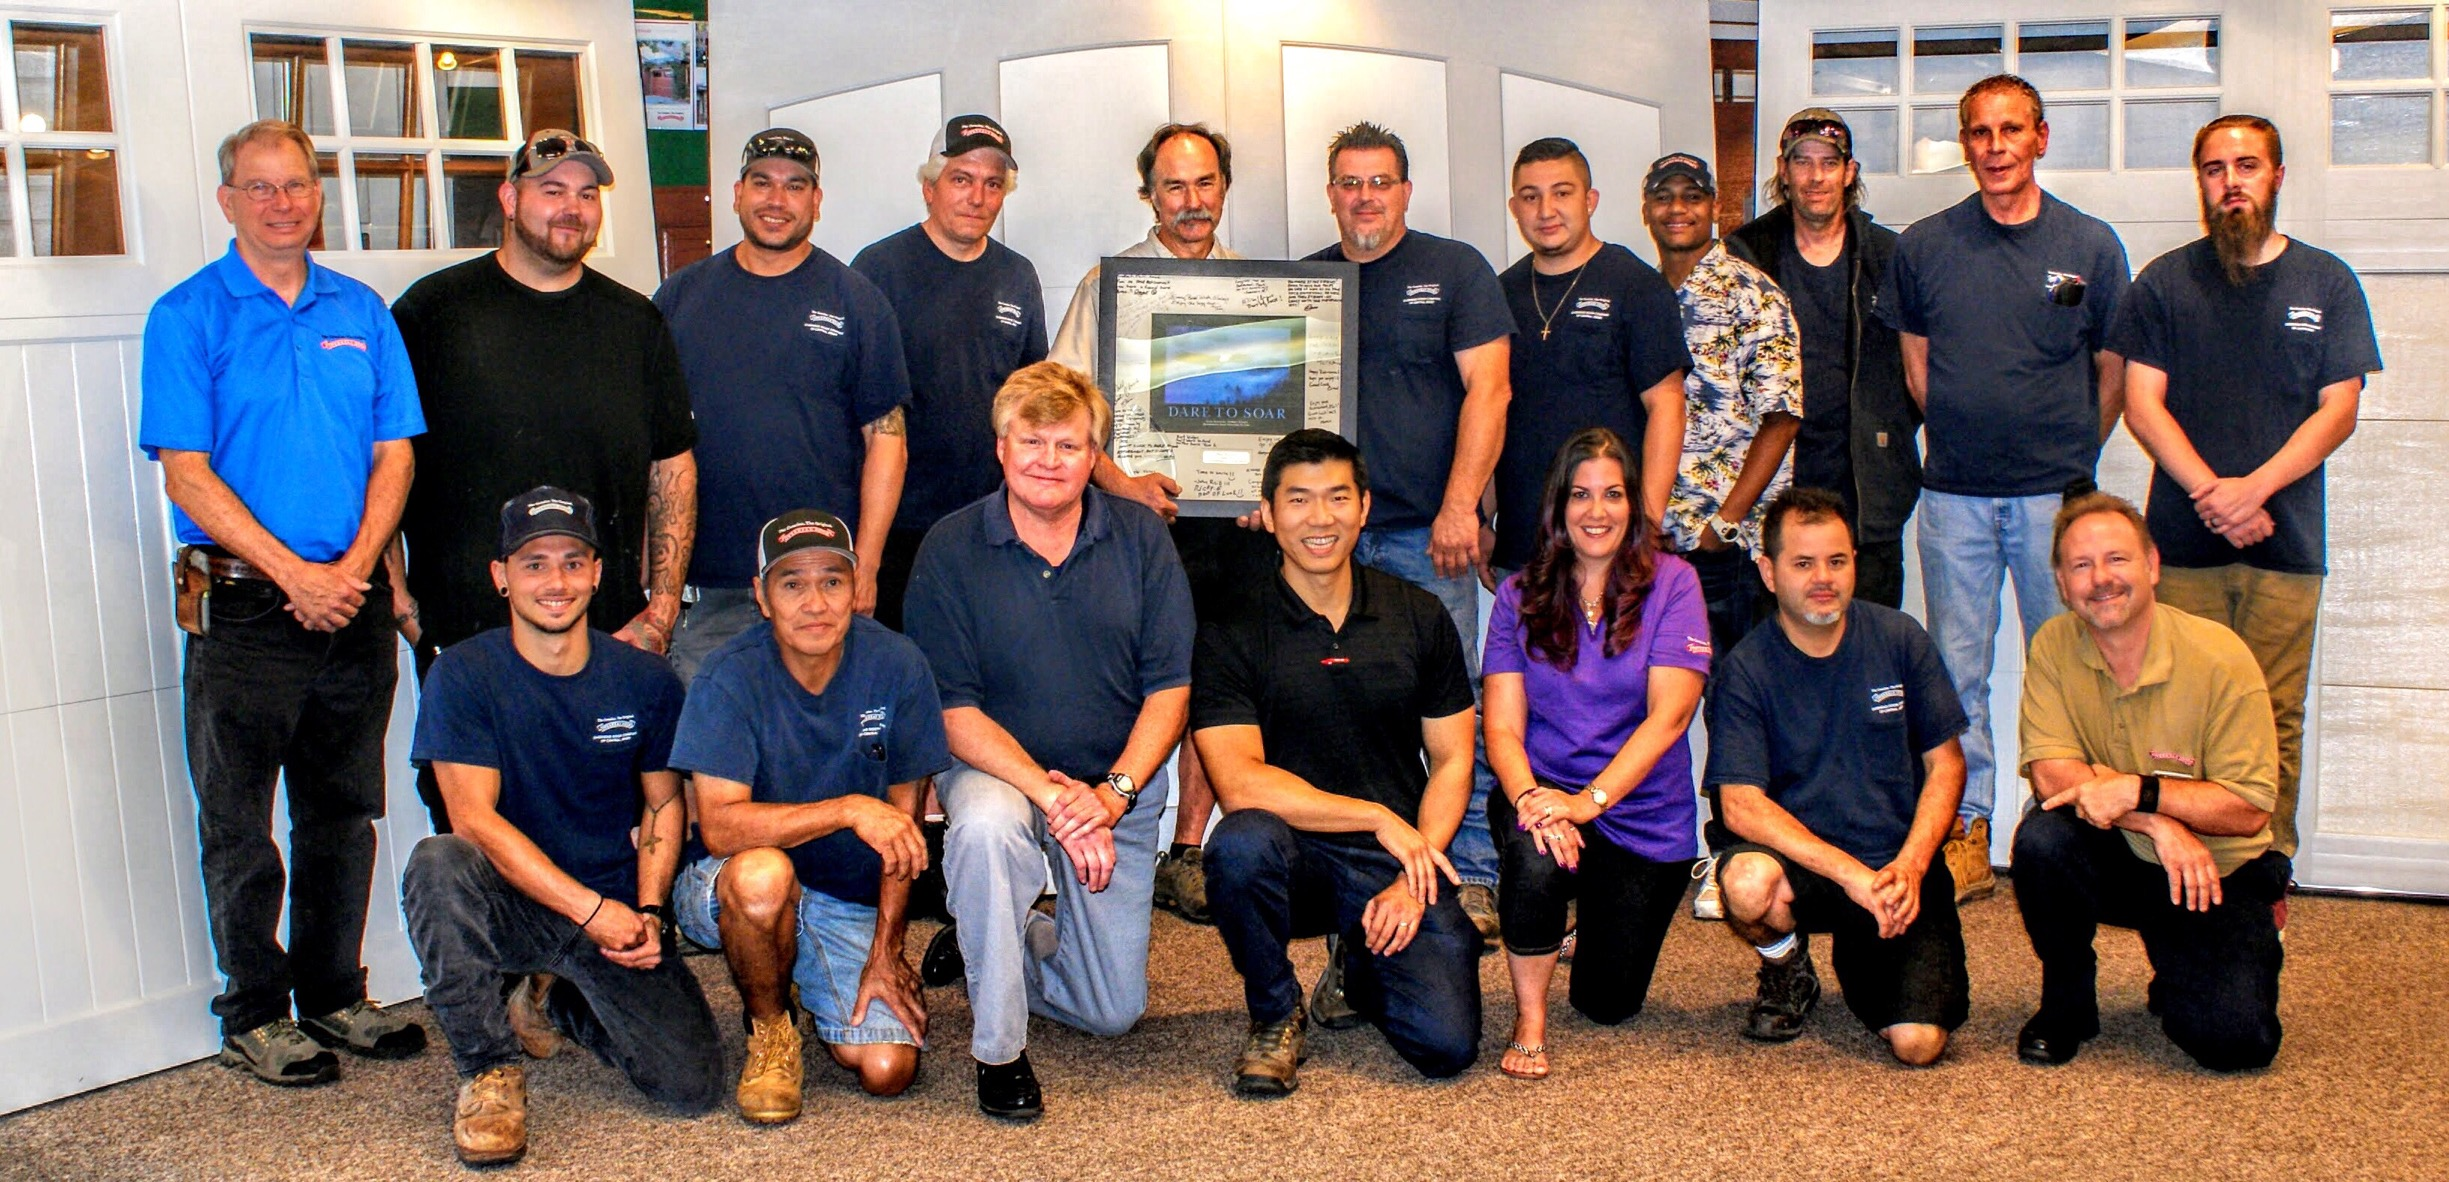 Overhead-Door-Company-of-Central-Jersey-Team-Photo.jpg